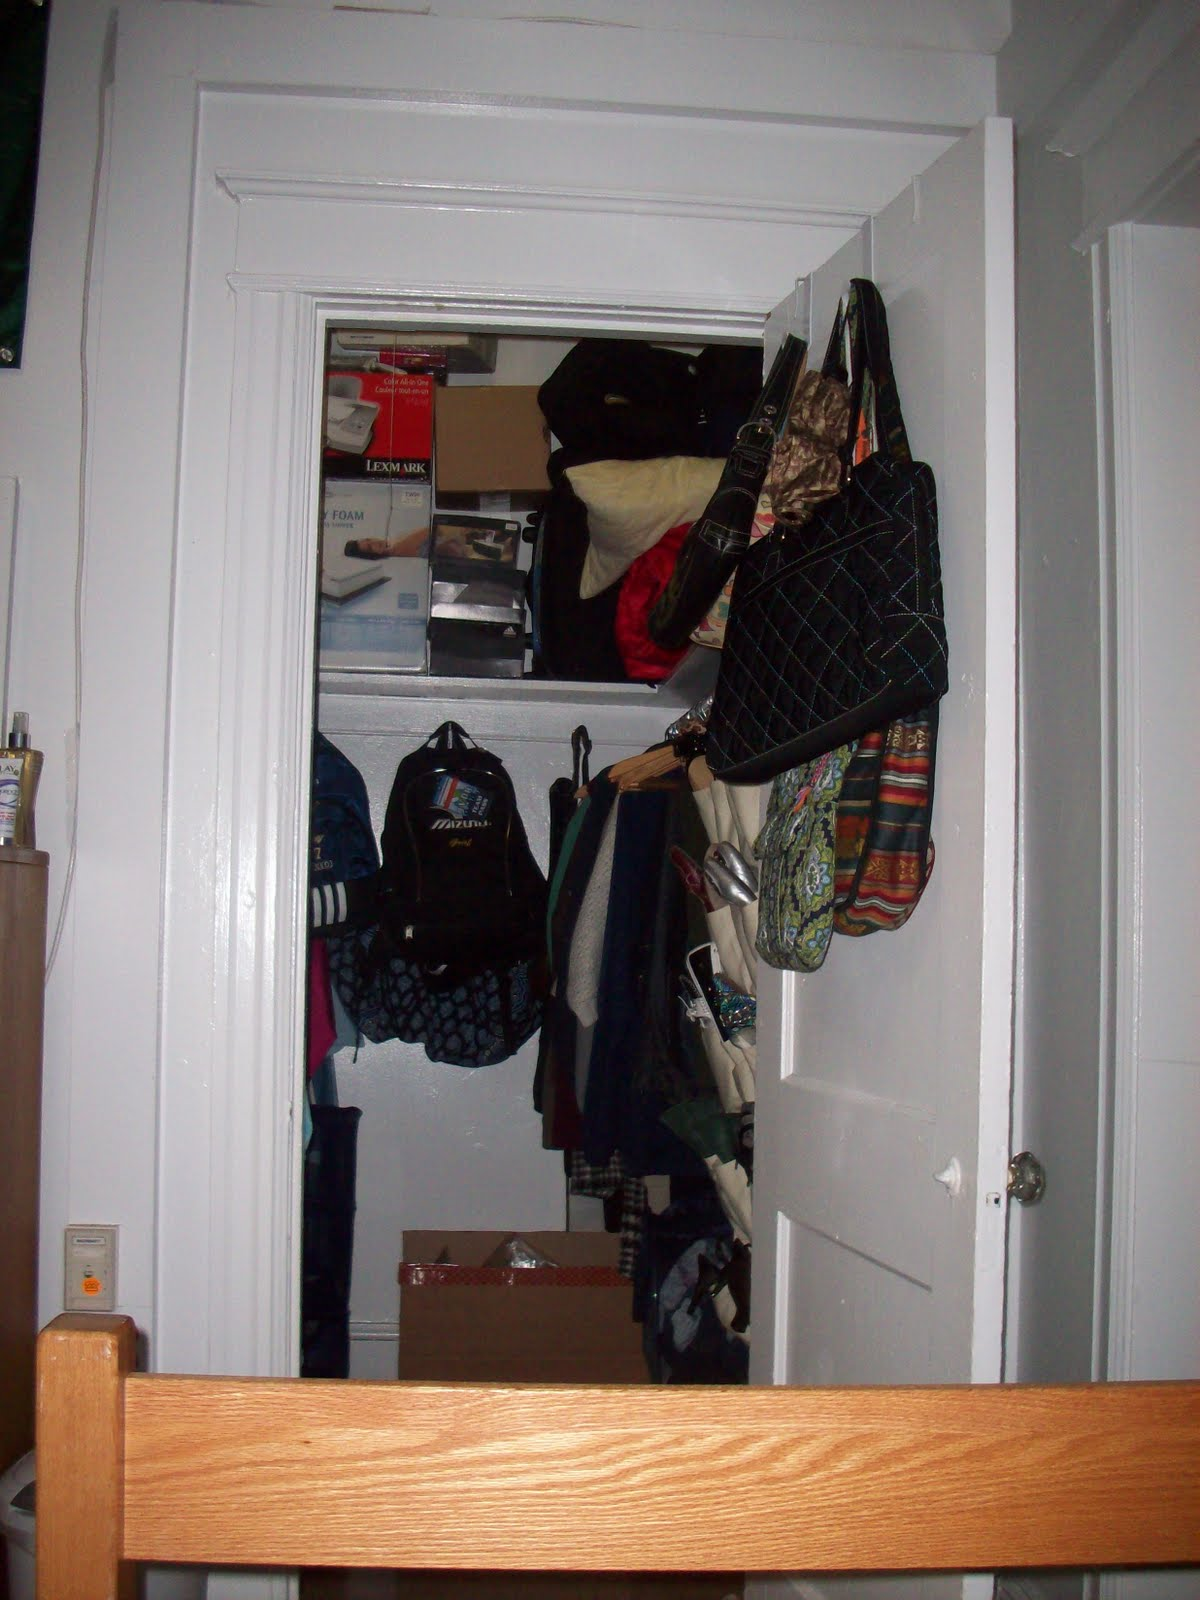 gw admissions student blog freshman residence halls part one and a dresser although if you ask me a packer flag should also be standard issue